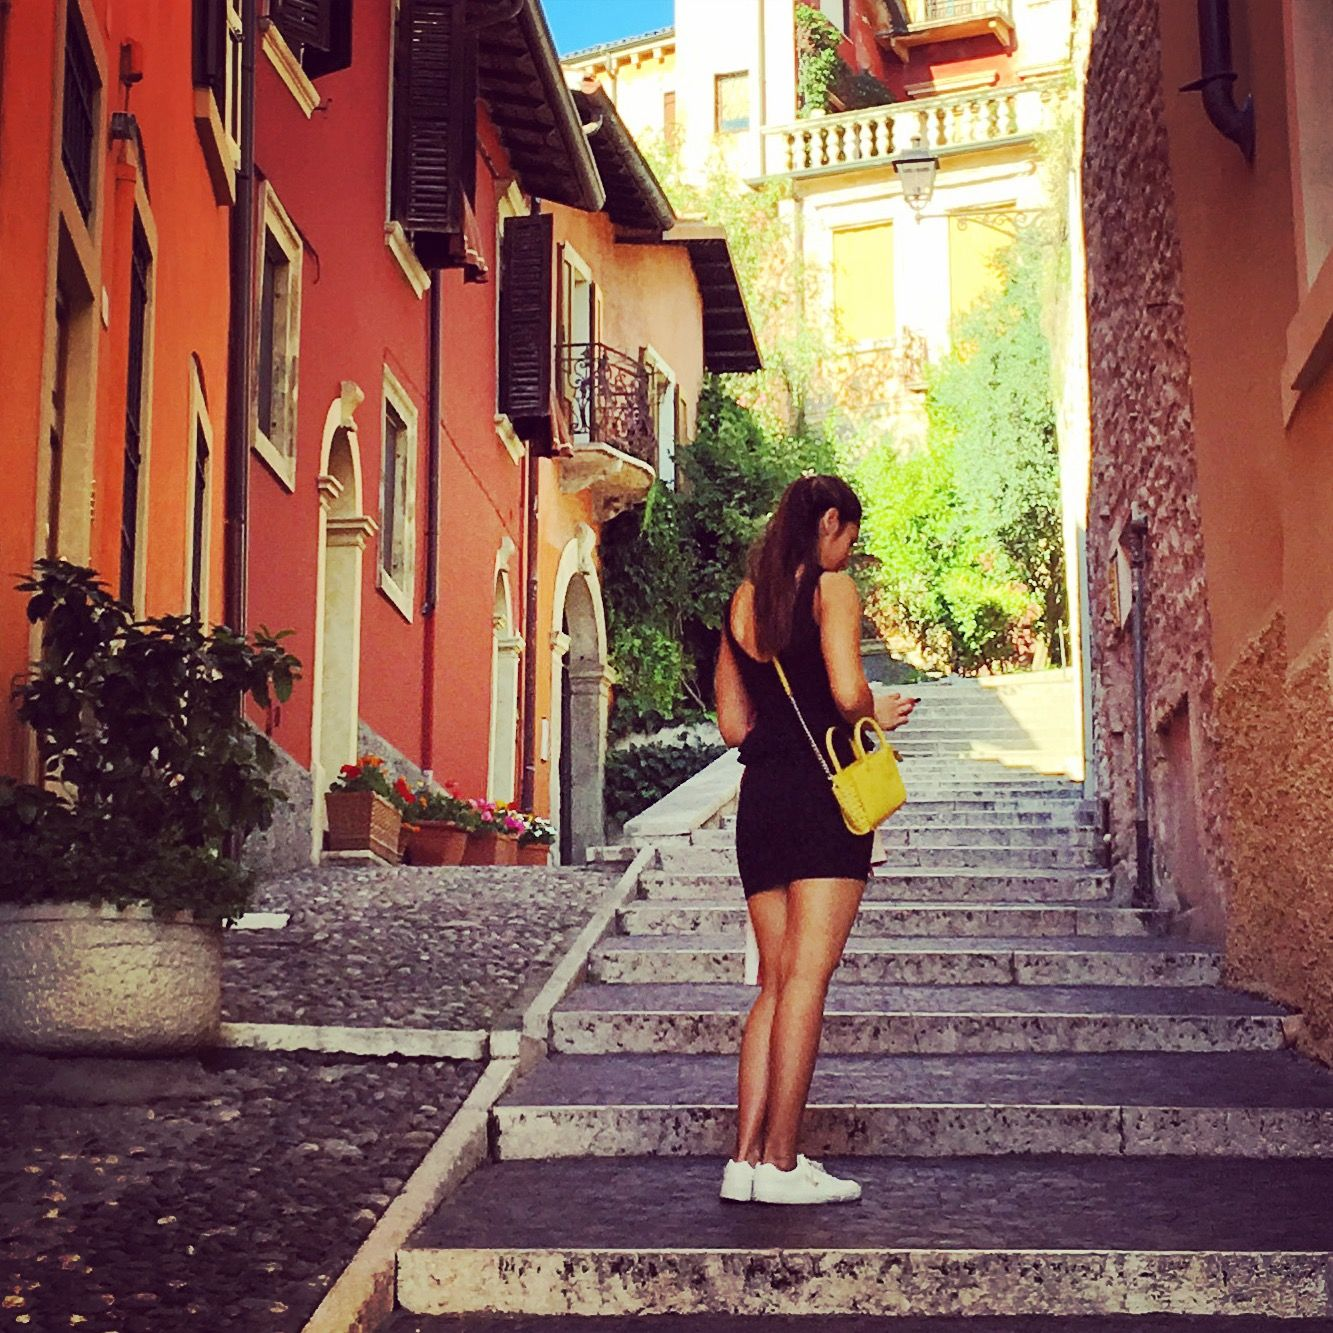 Verona. The colors, the art, the streets. It all just takes you in.